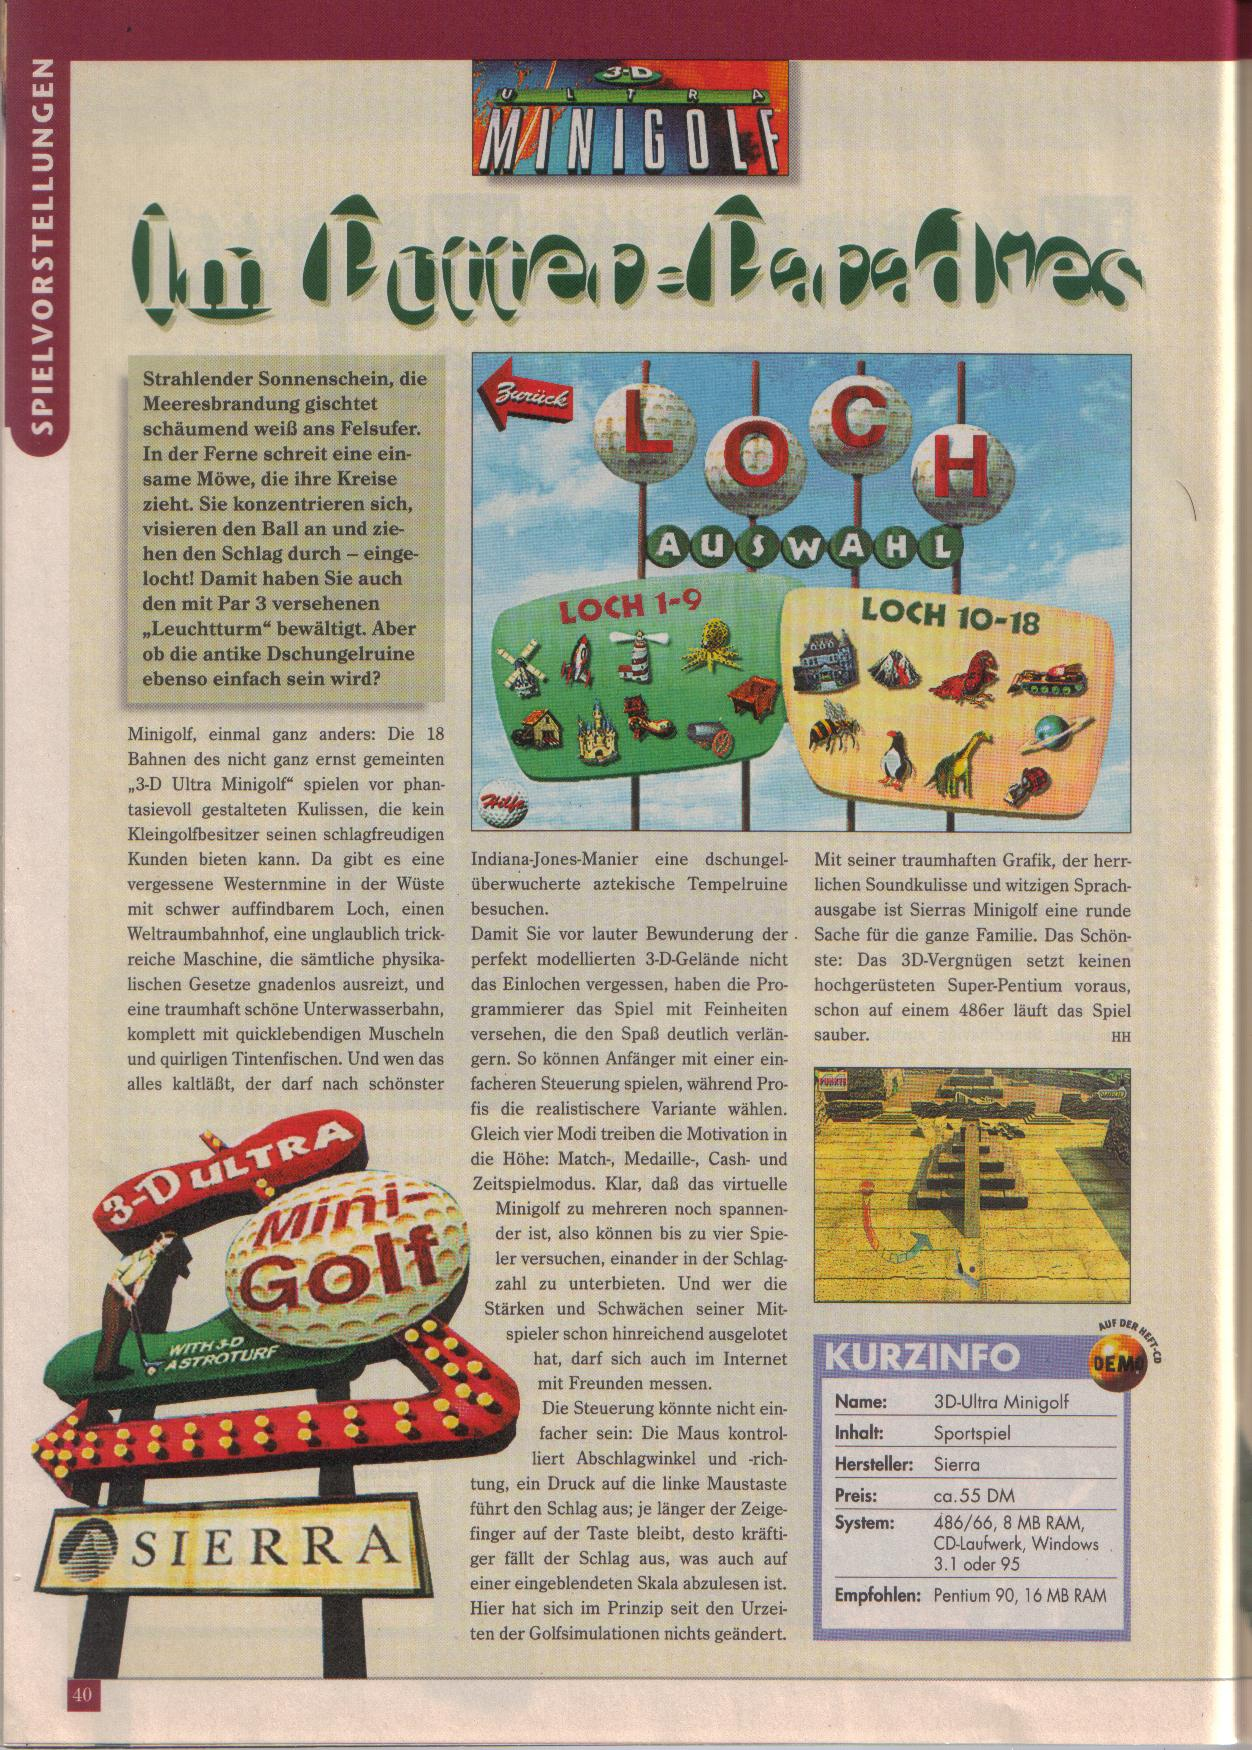 Dungeon Master II for PC (German, Best Seller Games) Page 40